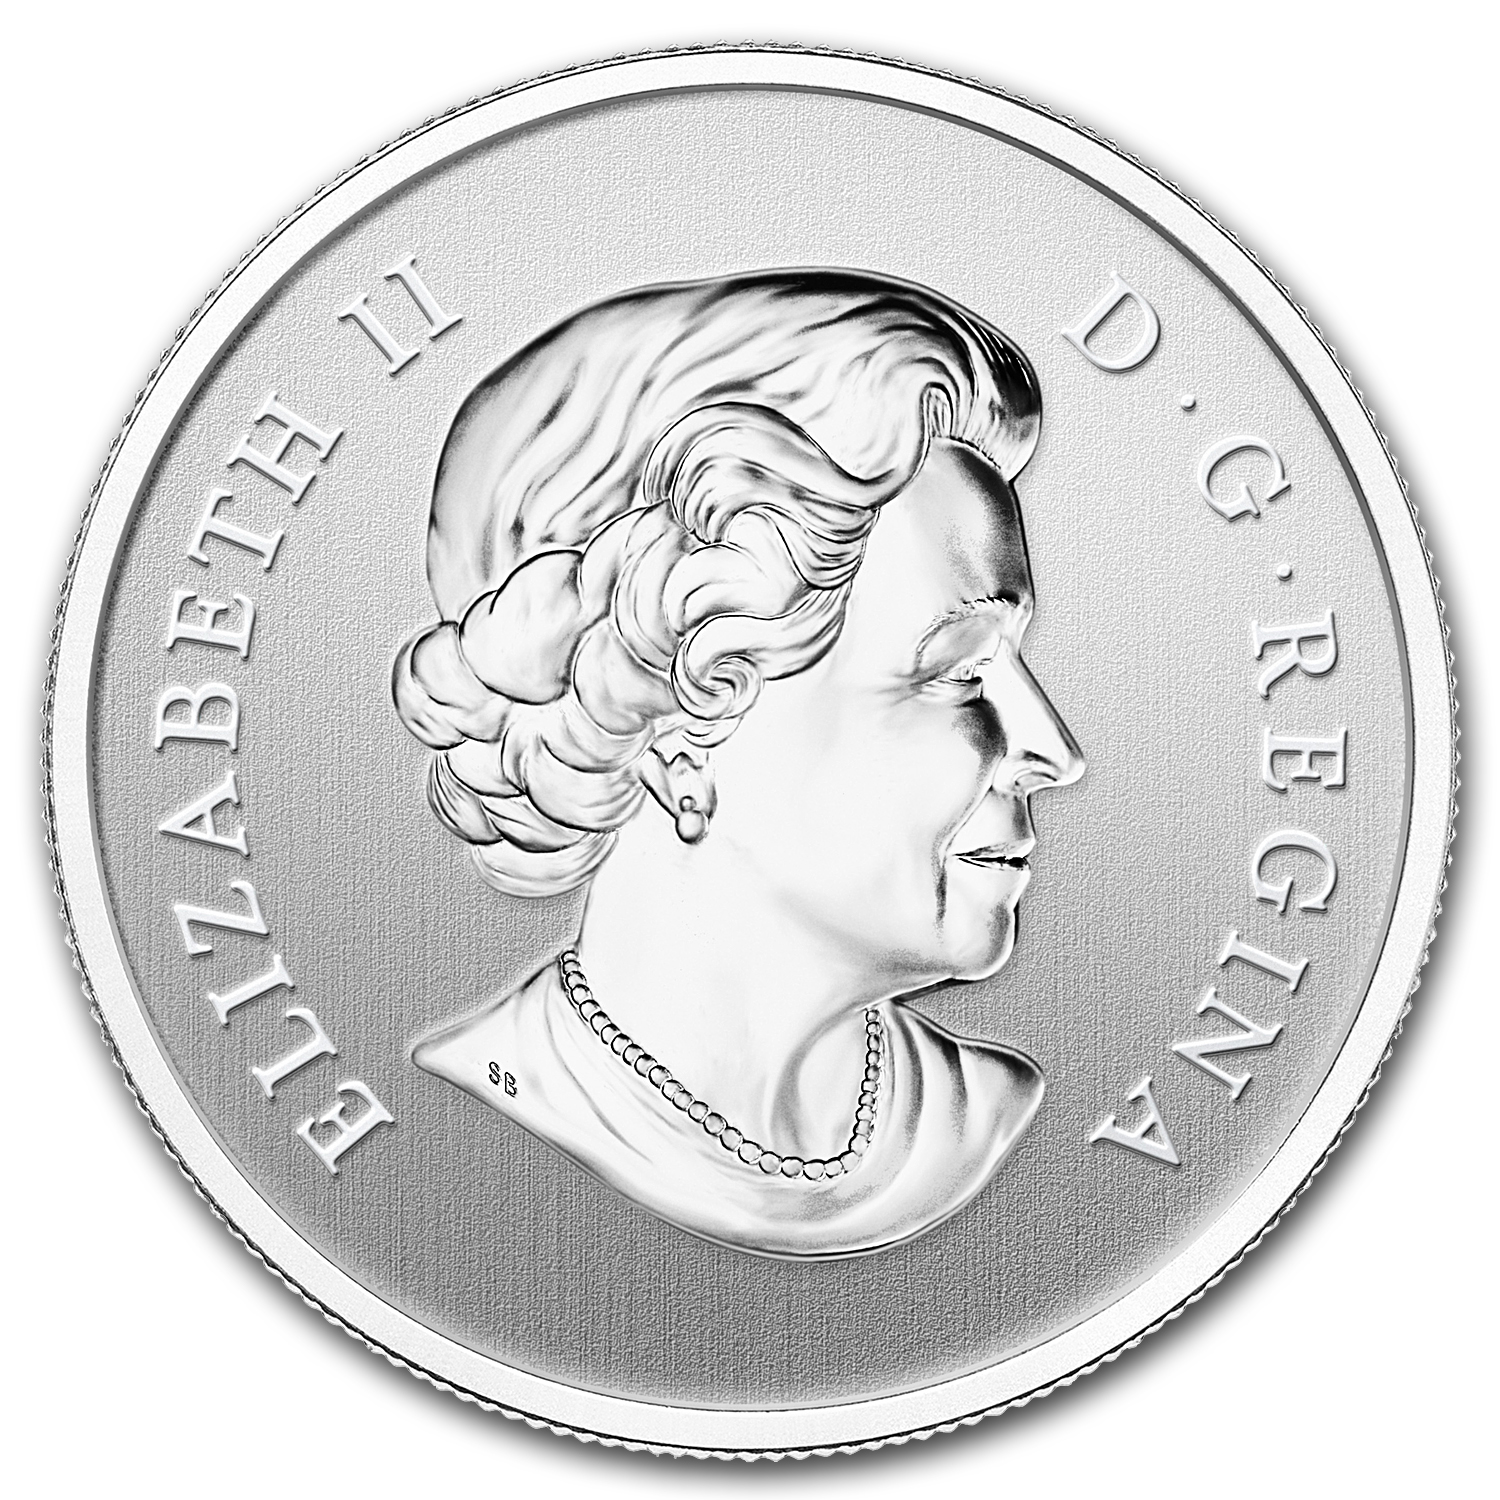 2013 Canada 1/2 oz Silver $10 Year of the Snake (Style 2)